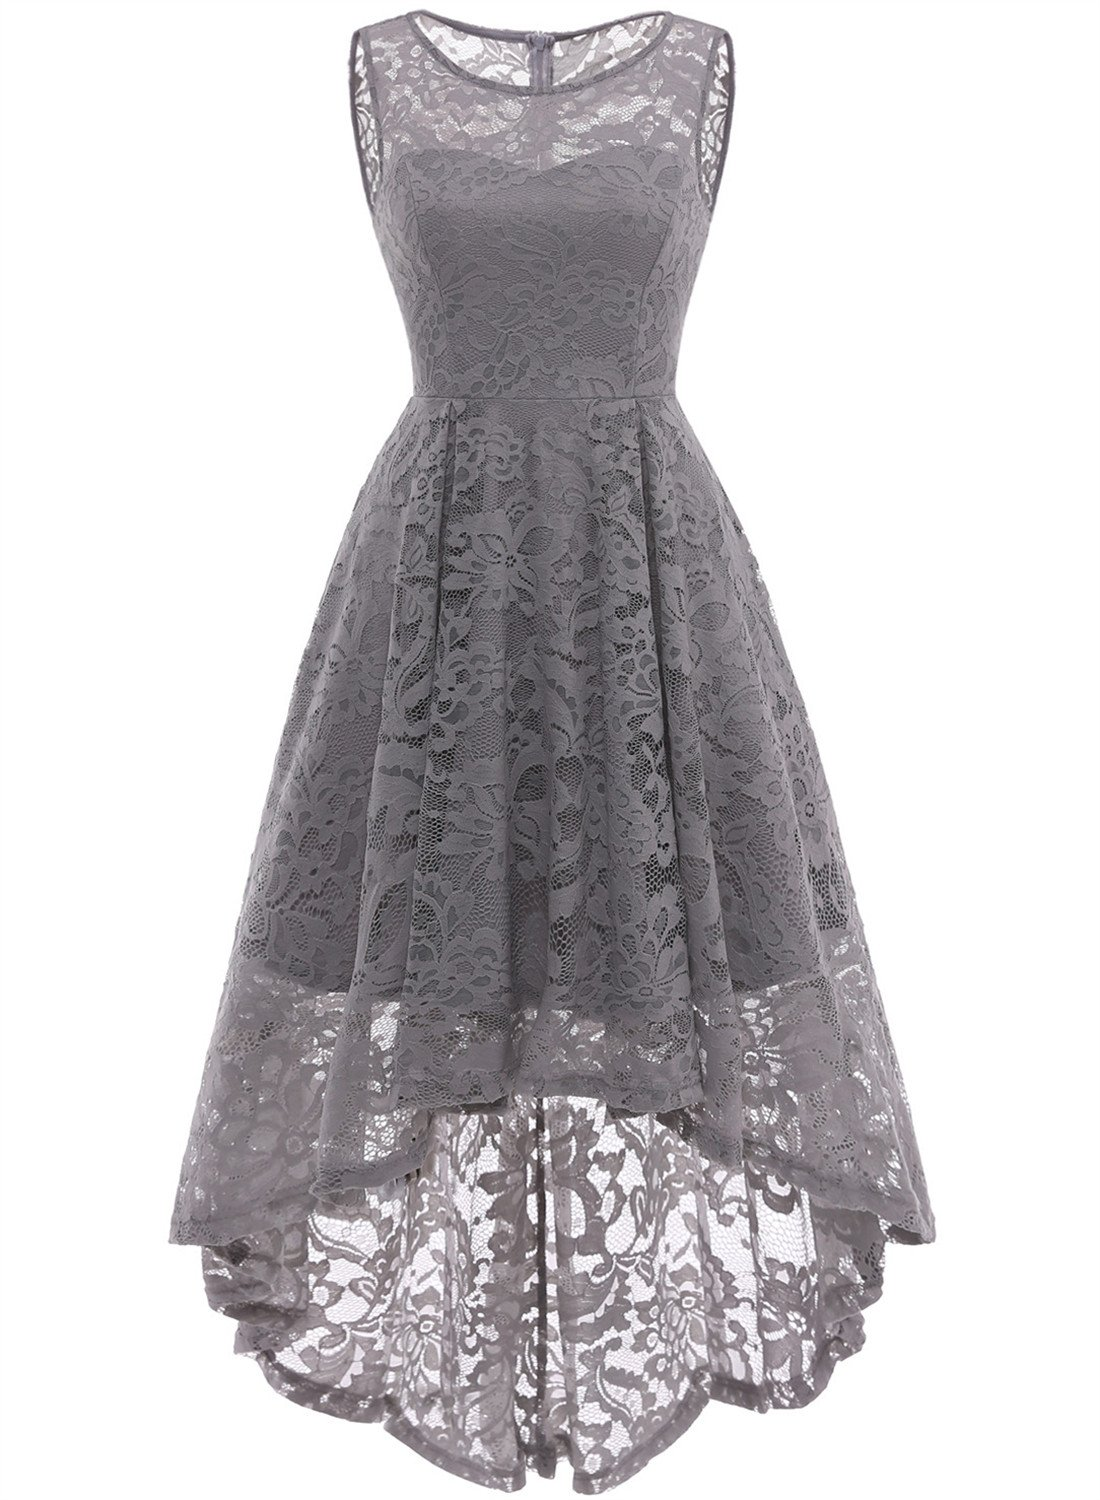 Mother Of The Bride Dresses - Women's Vintage Floral Lace Sleeveless Hi-Lo Cocktail Formal Swing Dress